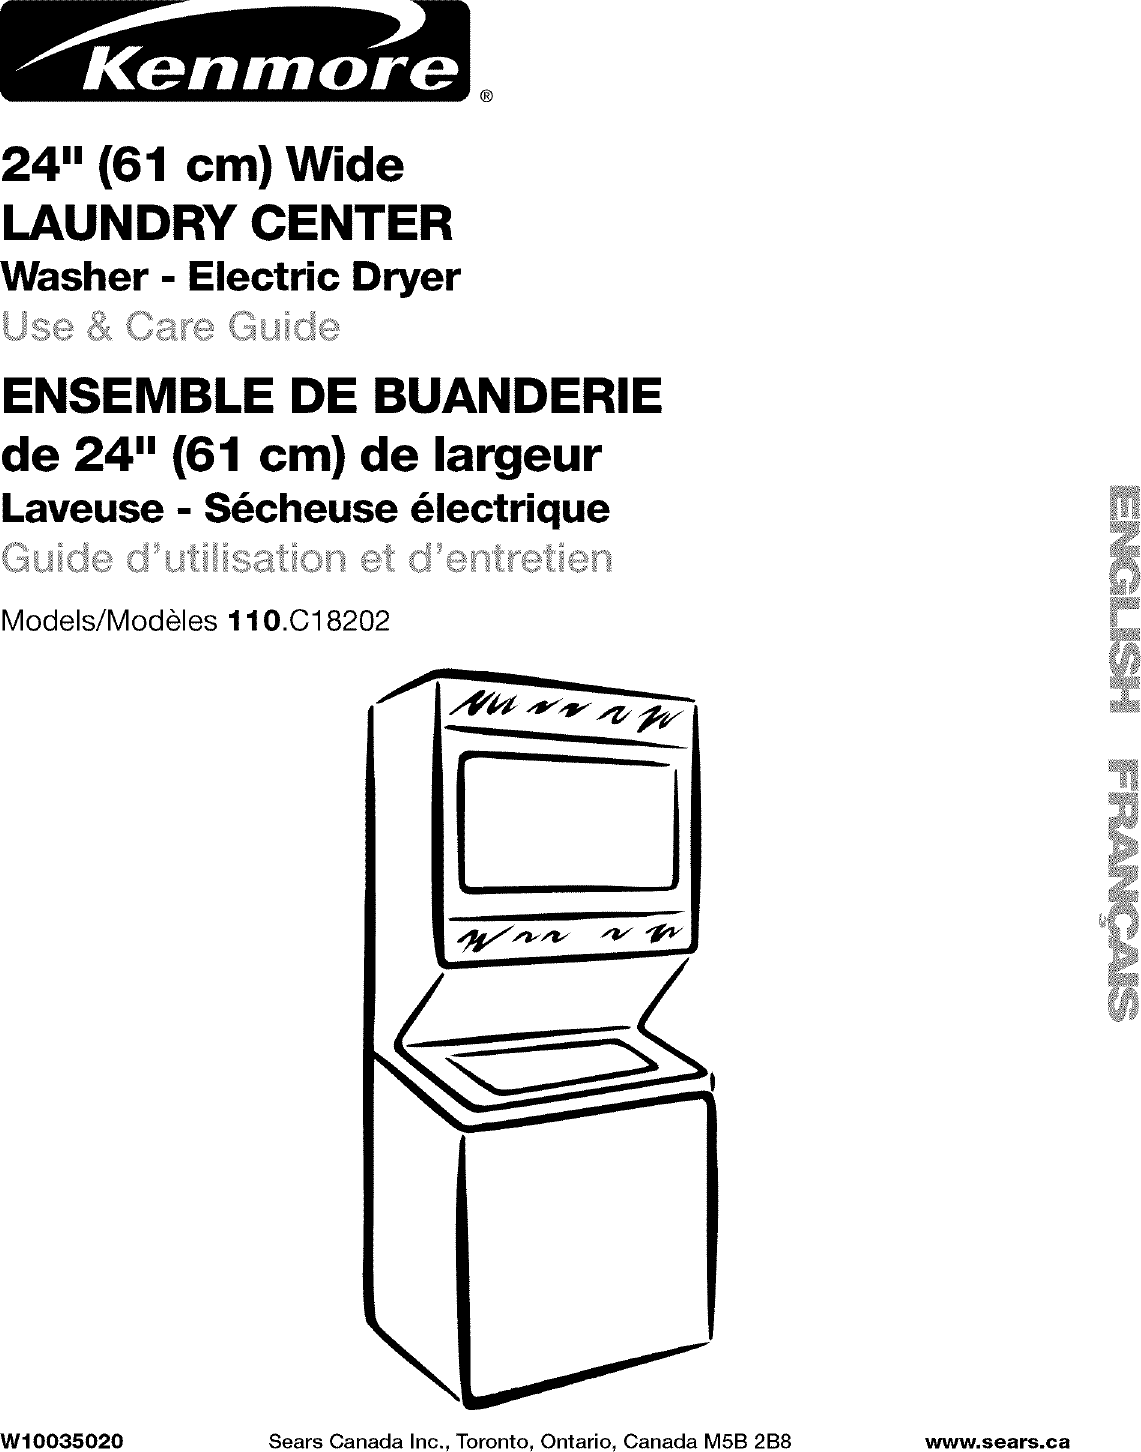 Kenmore User Manual Laundry Center Manuals And